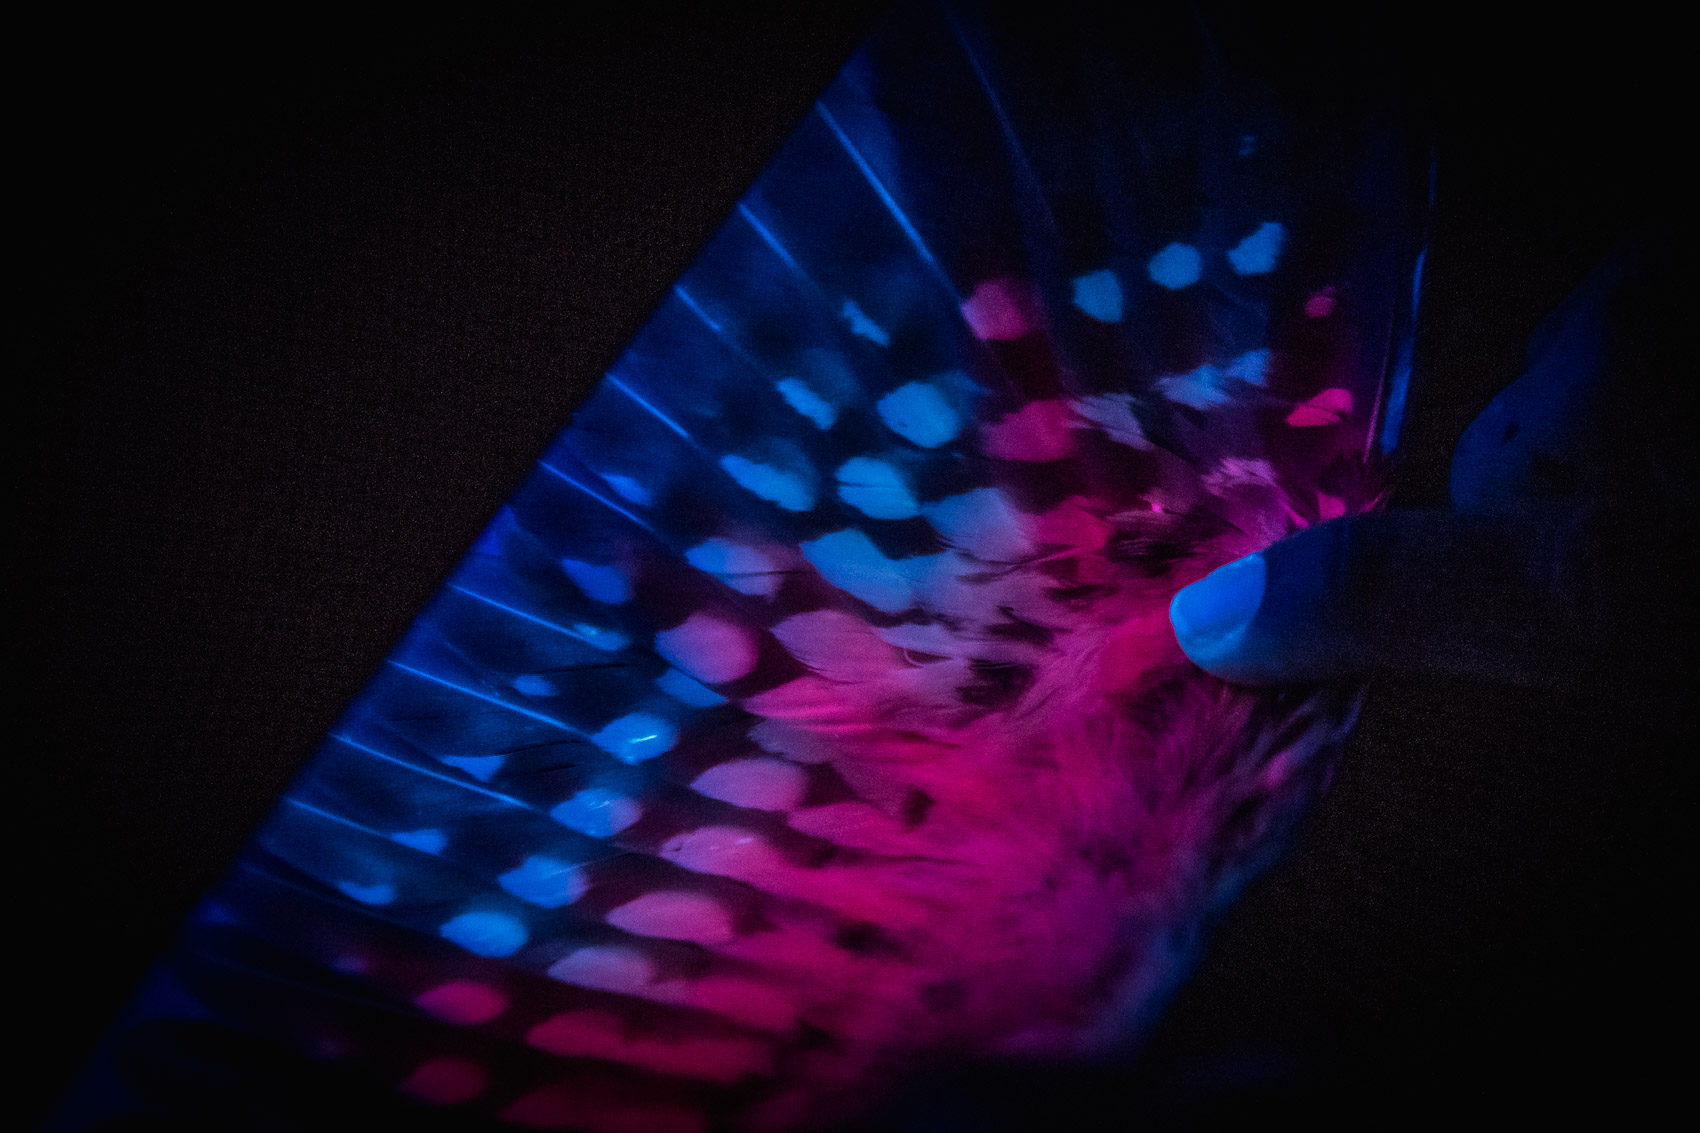 Northern Saw-whet owl wing under ultra violet light © David Coulson conservation photographer